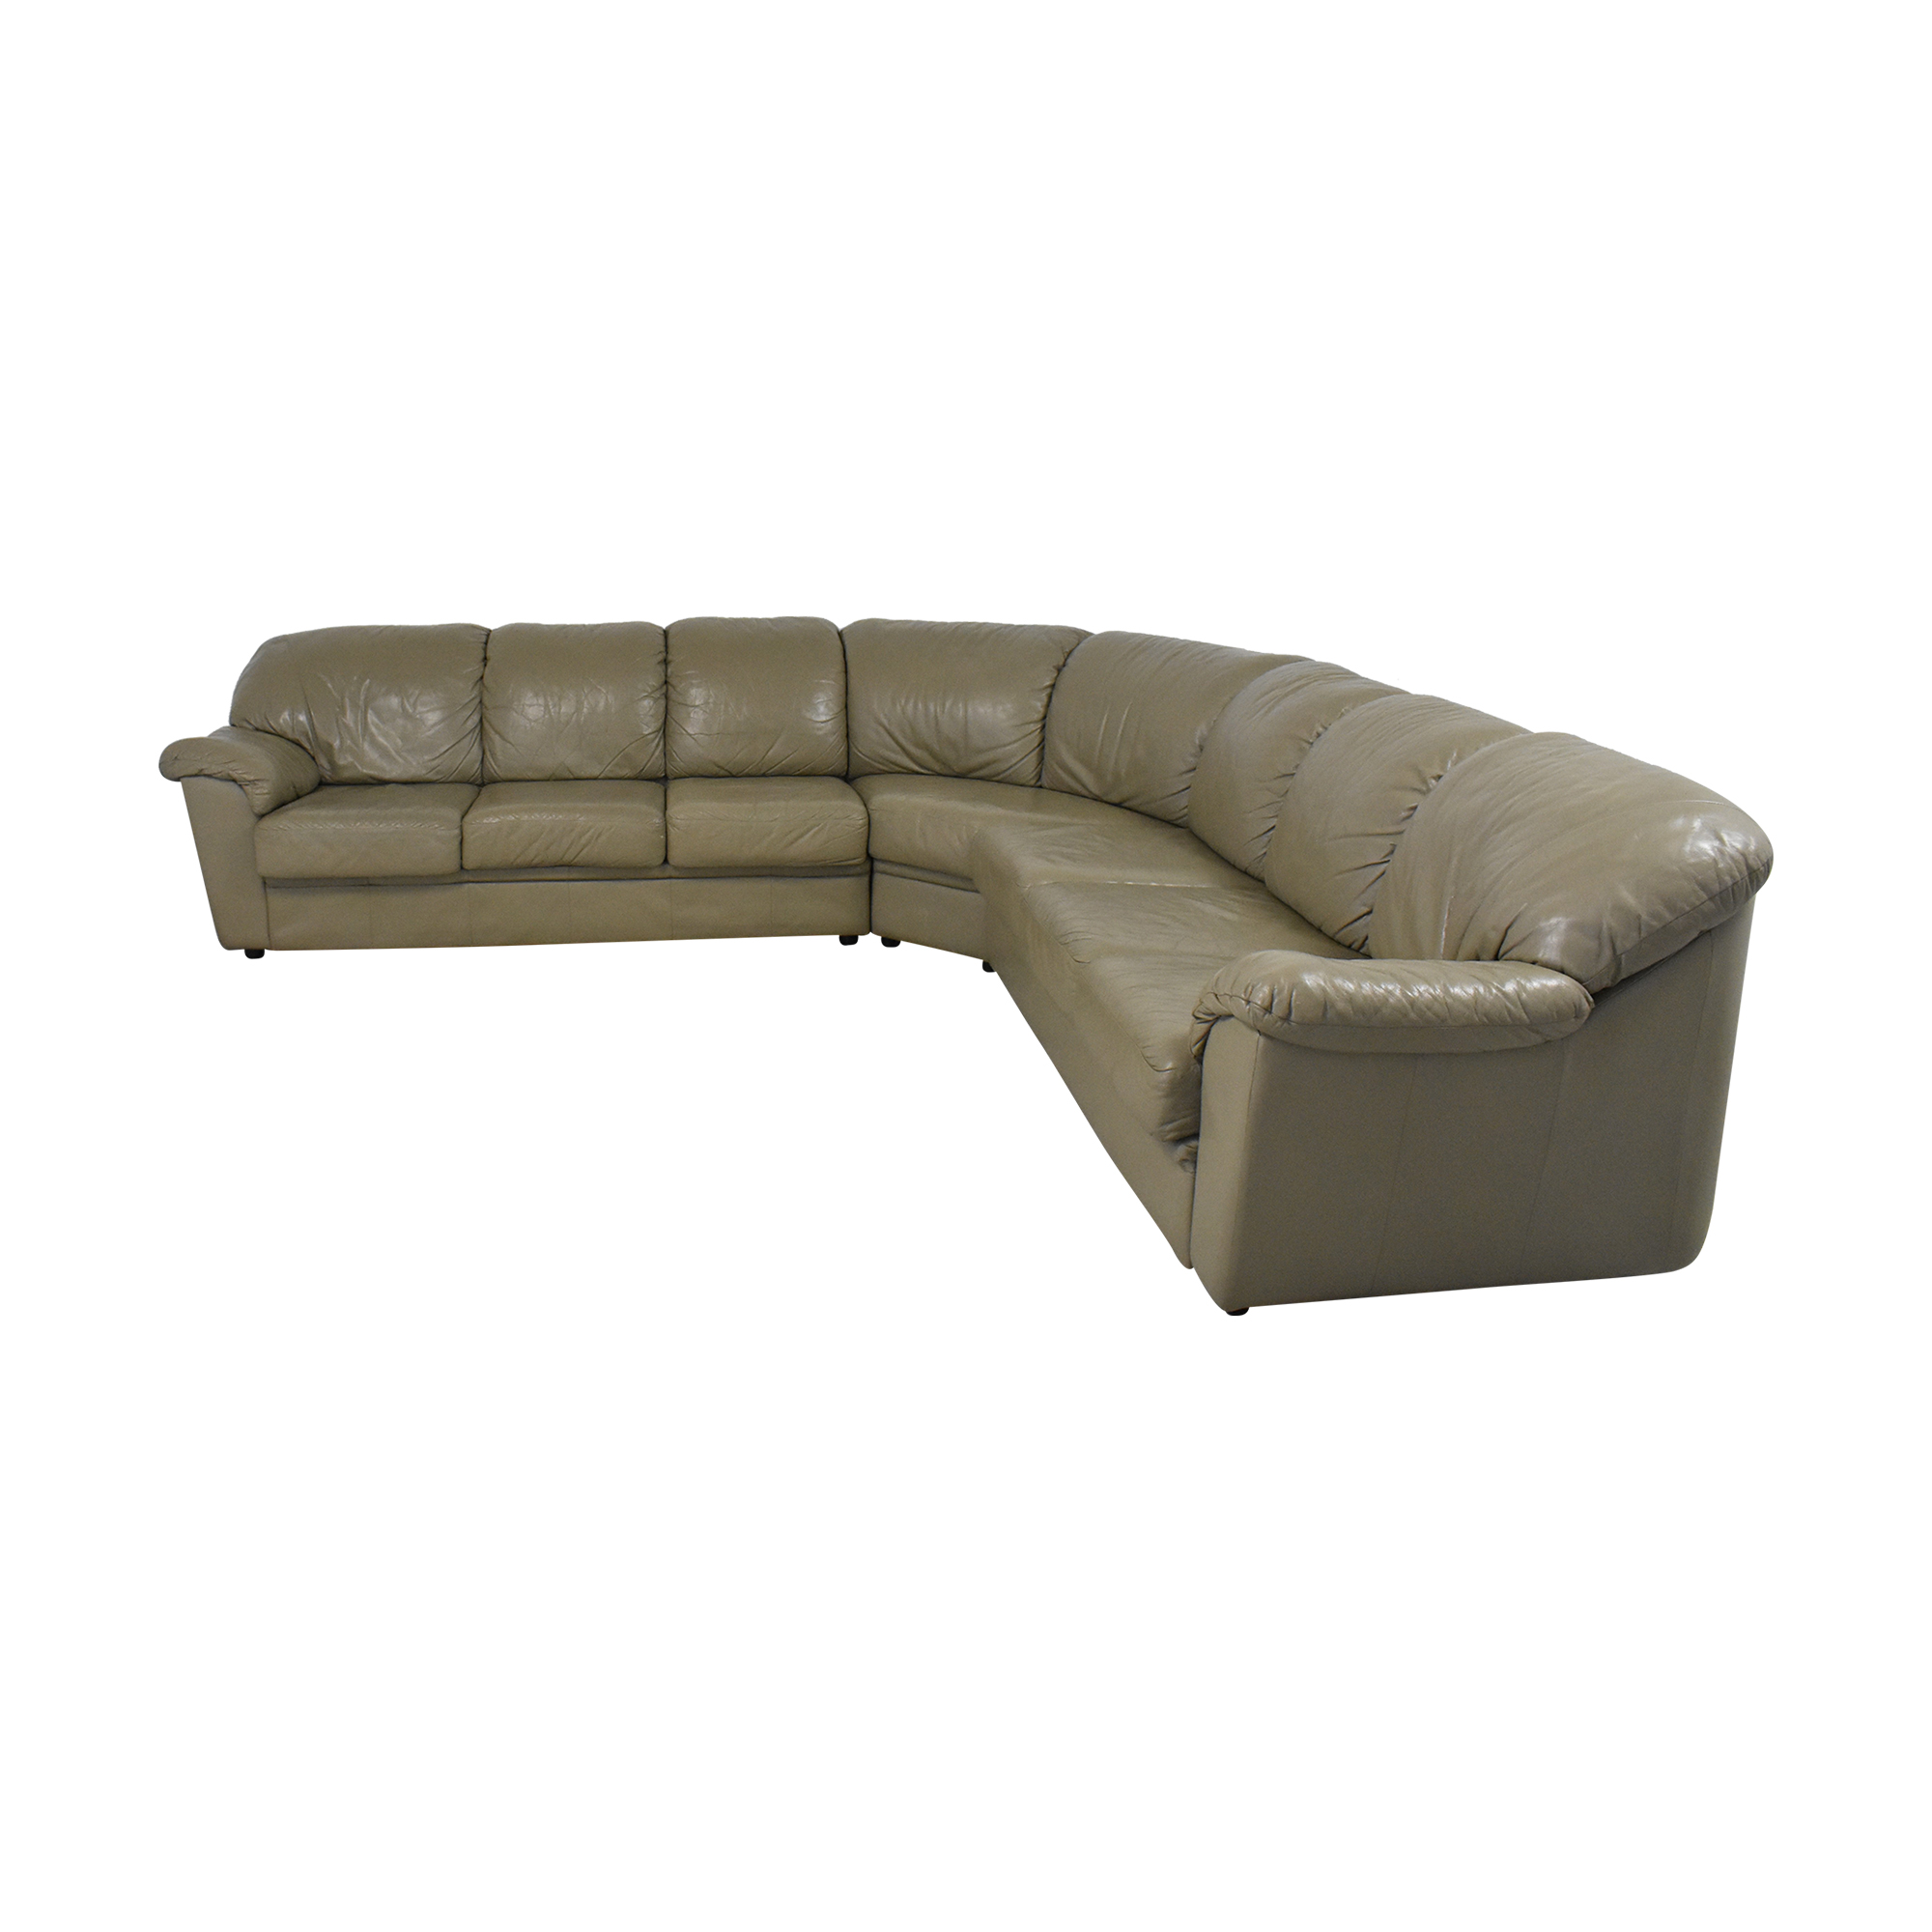 Jaymar Jaymar Custom Corner Sectional Sofa